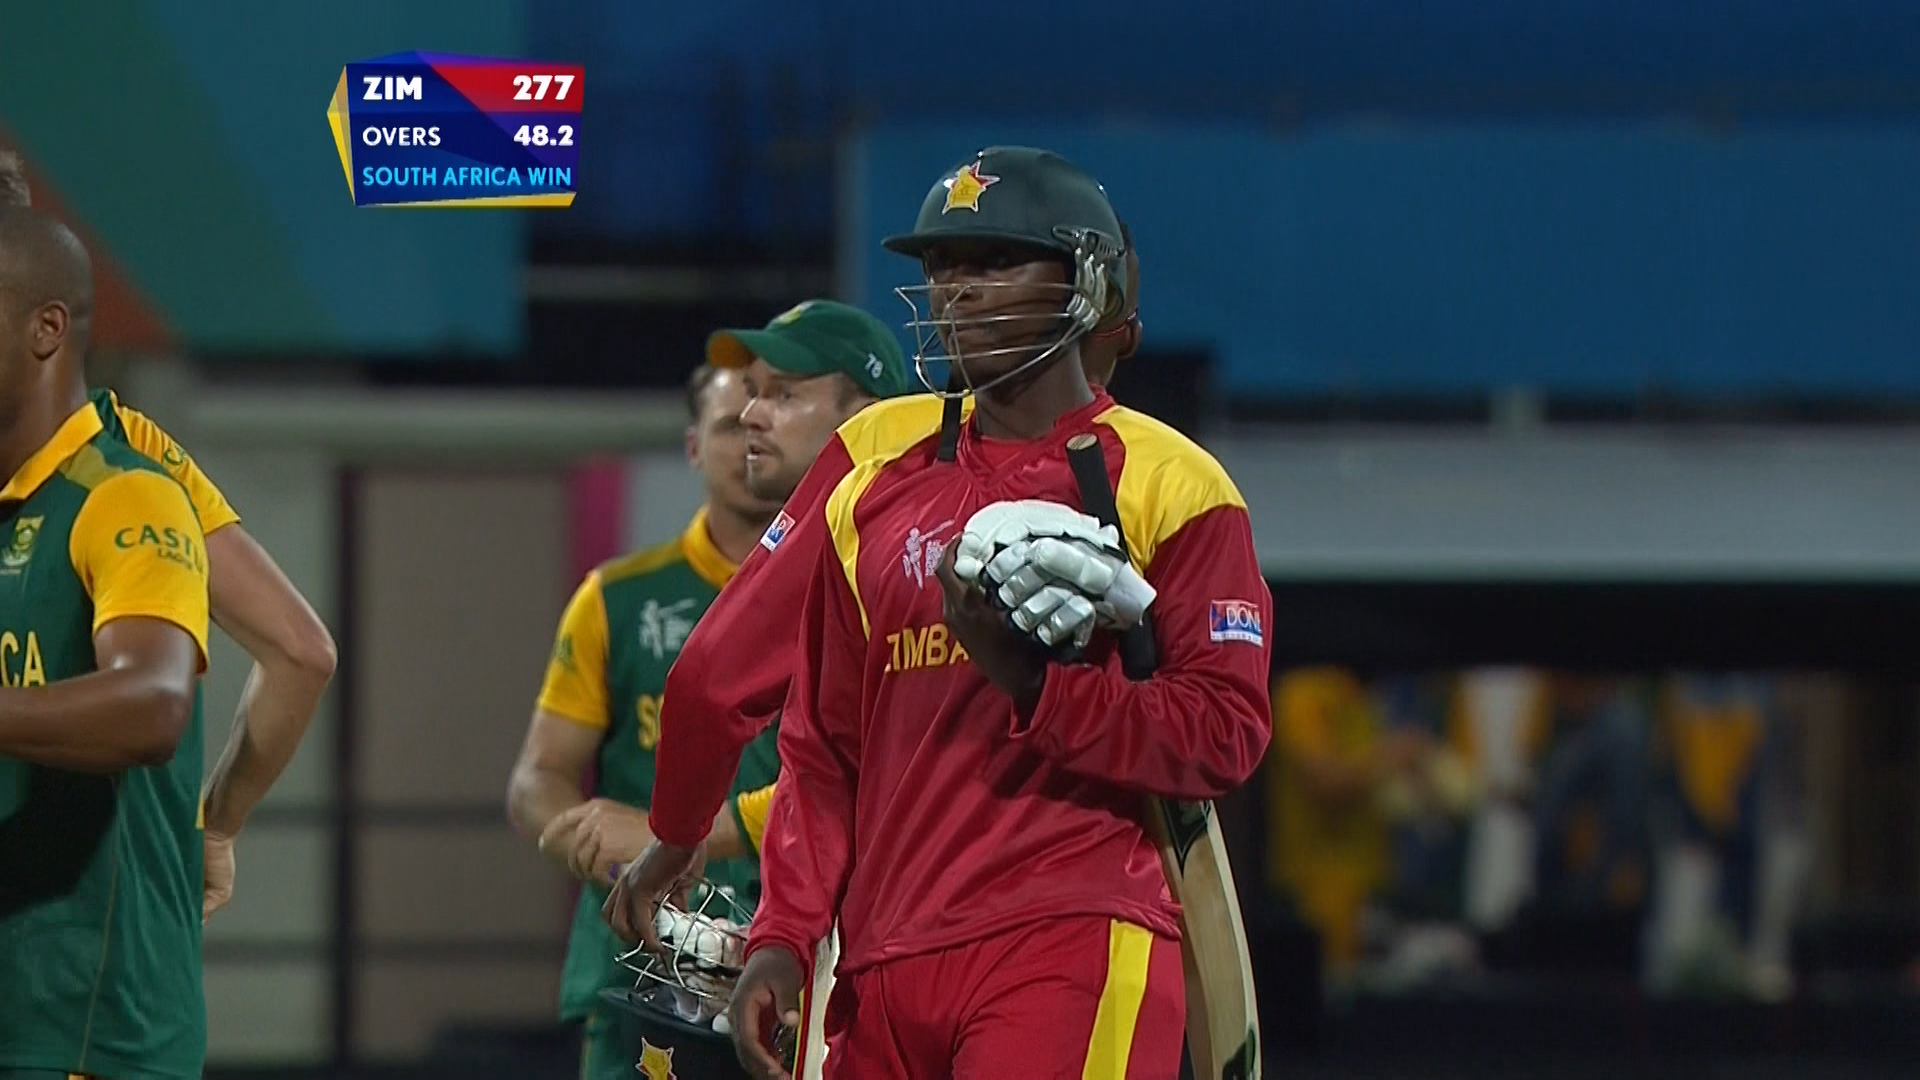 Chatara wicket – SA vs ZIM